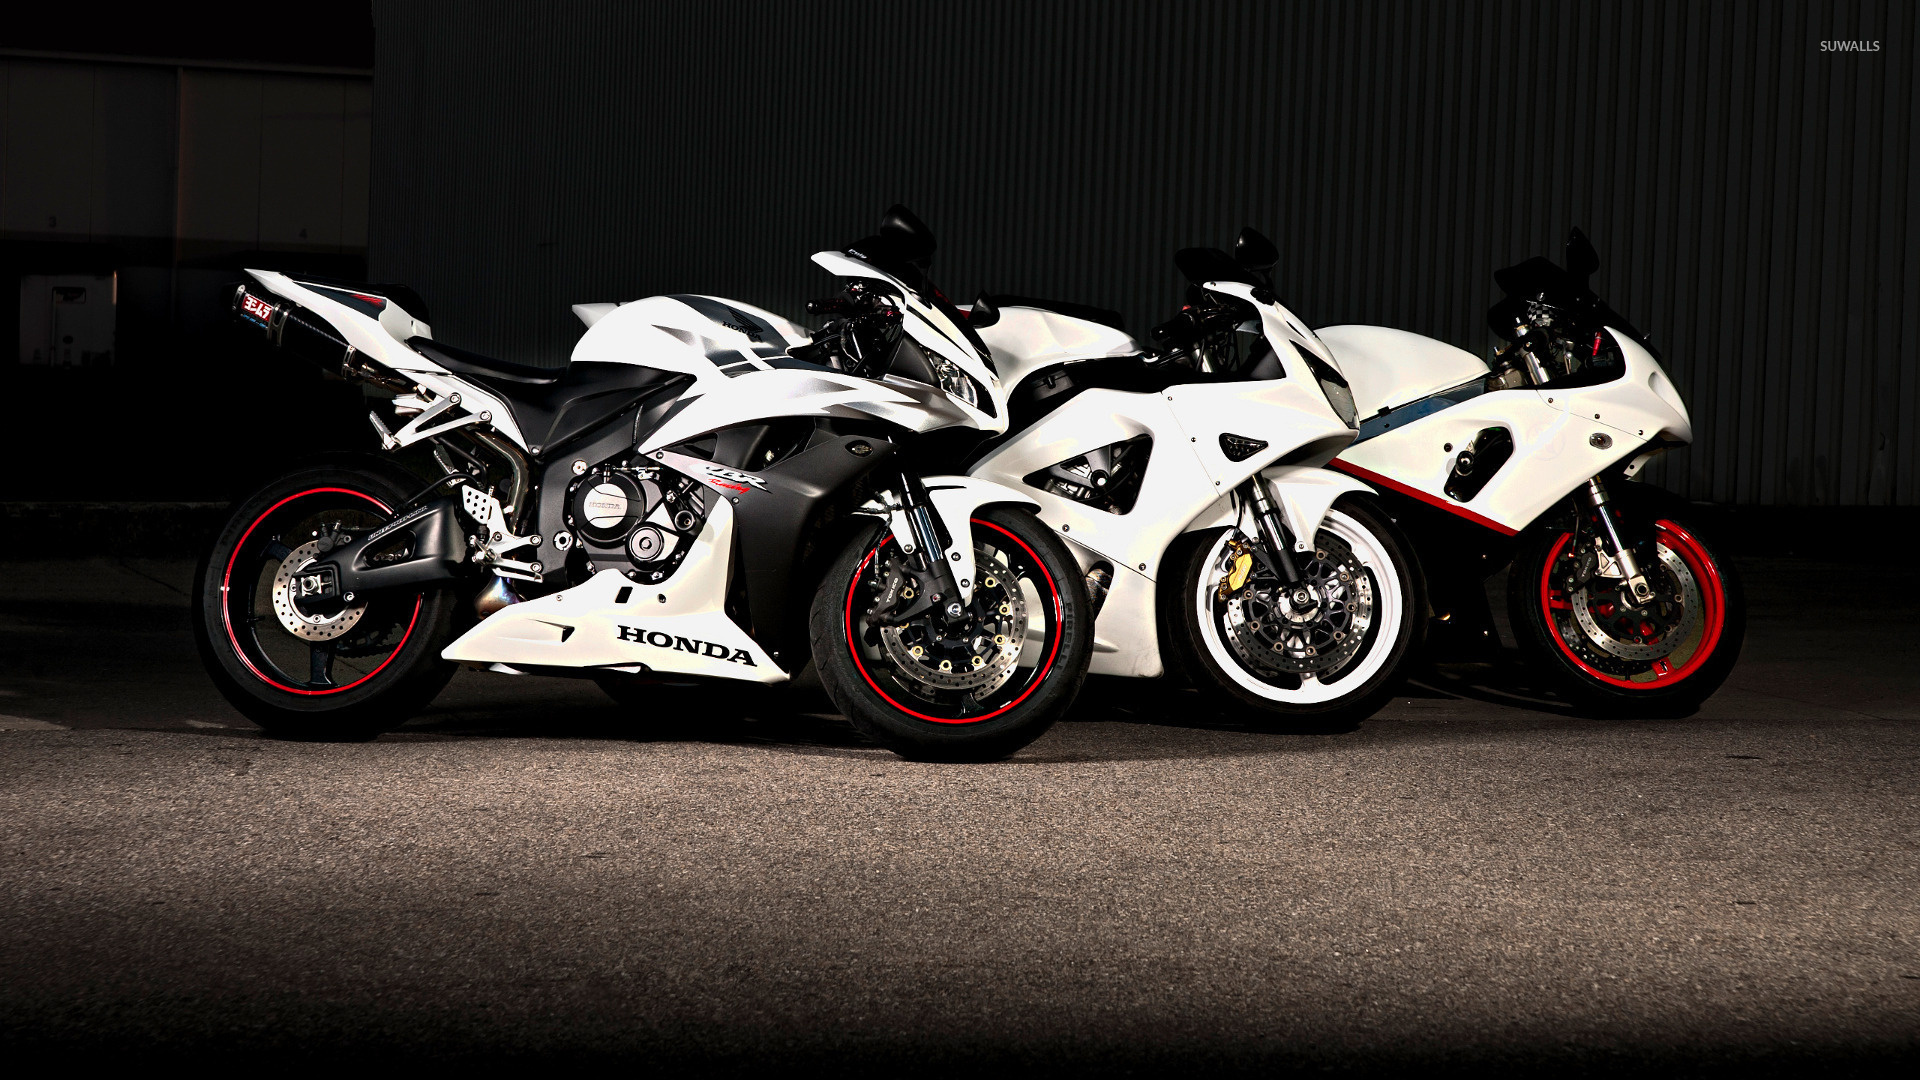 motorcycle wallpapers - wallpapers with motorcycles in all resolutions